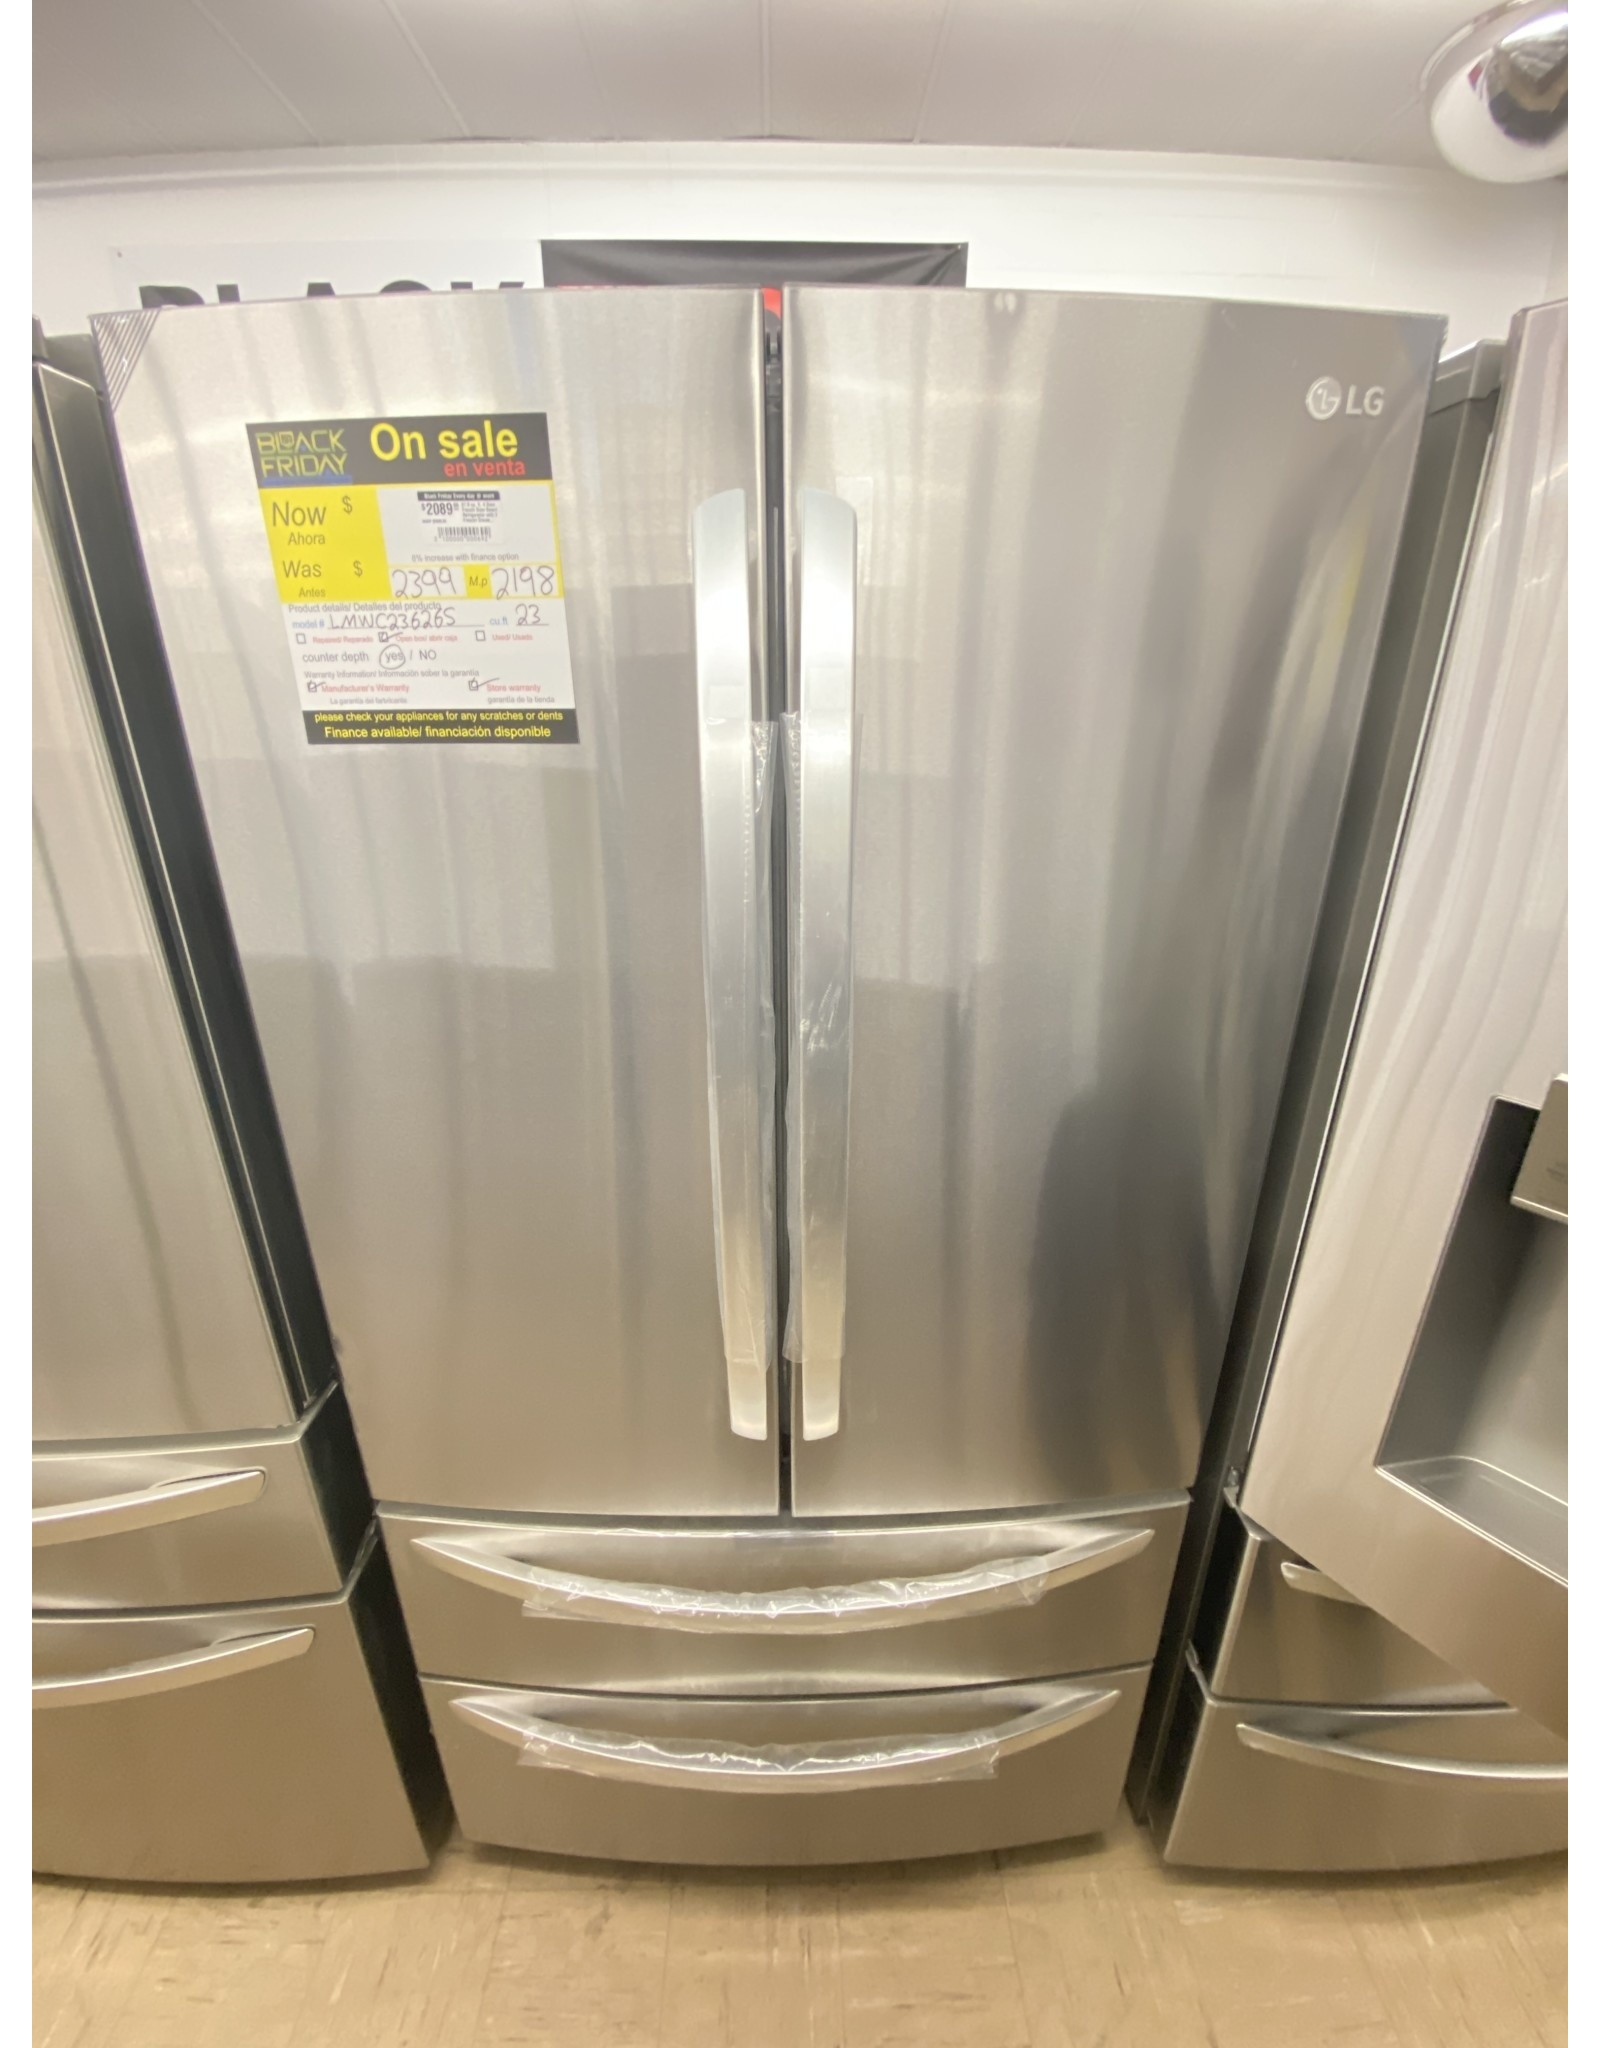 LG Electronics 27.8 cu. ft. 4 Door French Door Smart Refrigerator with 2 Freezer Drawers and Wi-Fi Enabled in Stainless Steel